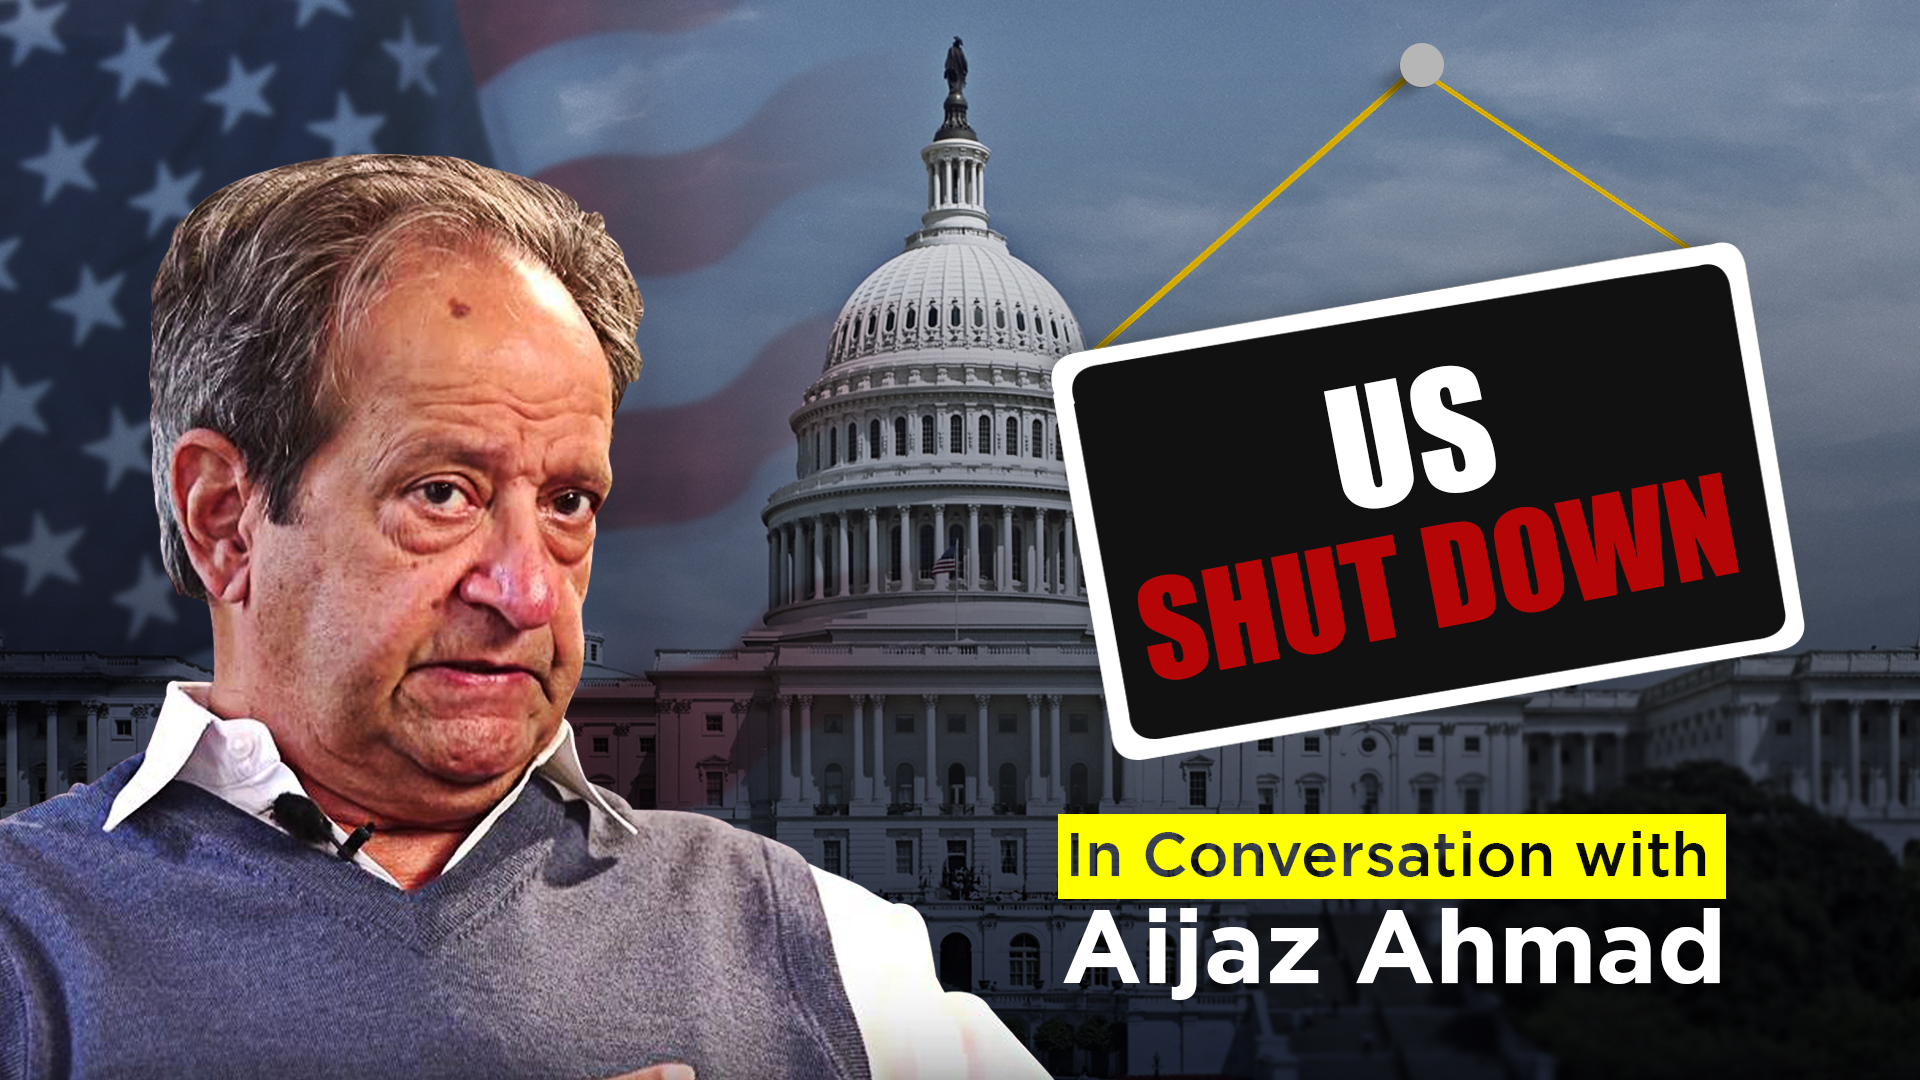 In Conversation With Aijaz Ahmed